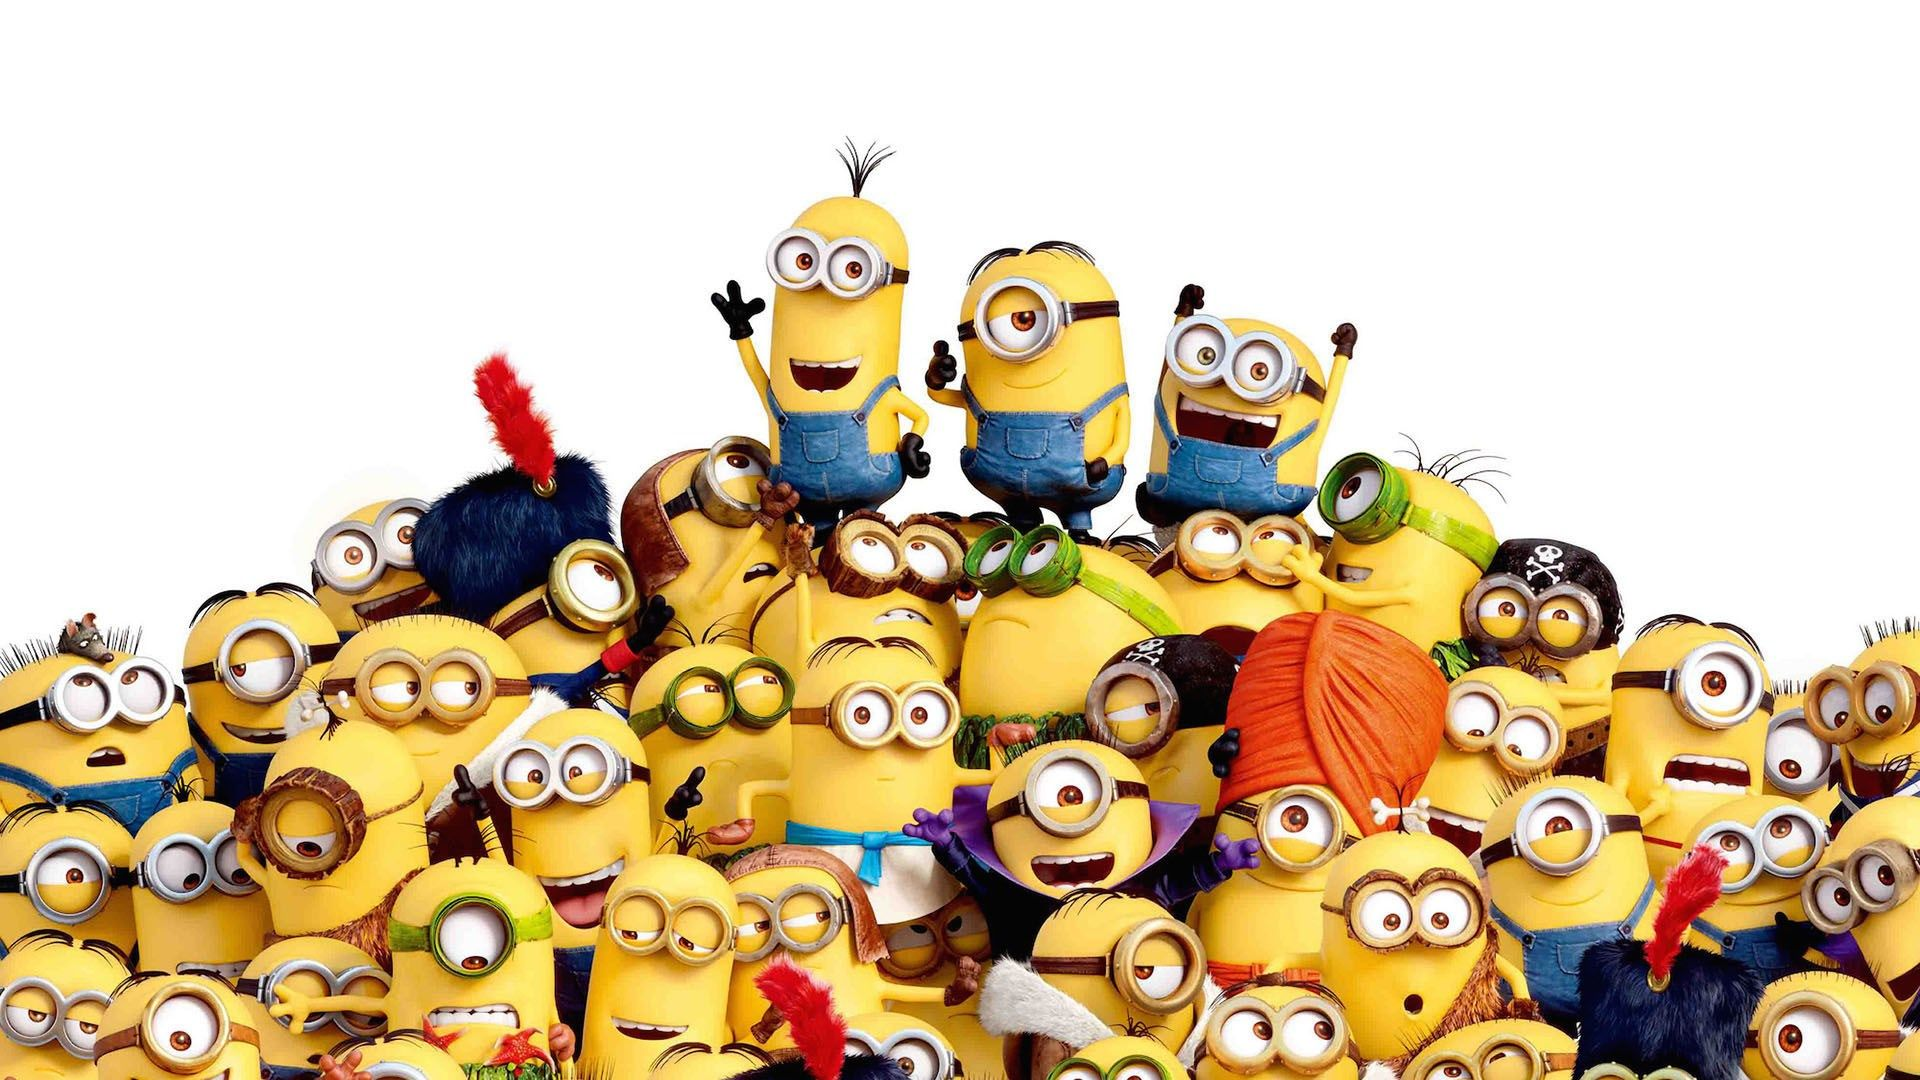 1920x1080 Free Desktop Wallpaper Downloads Minions